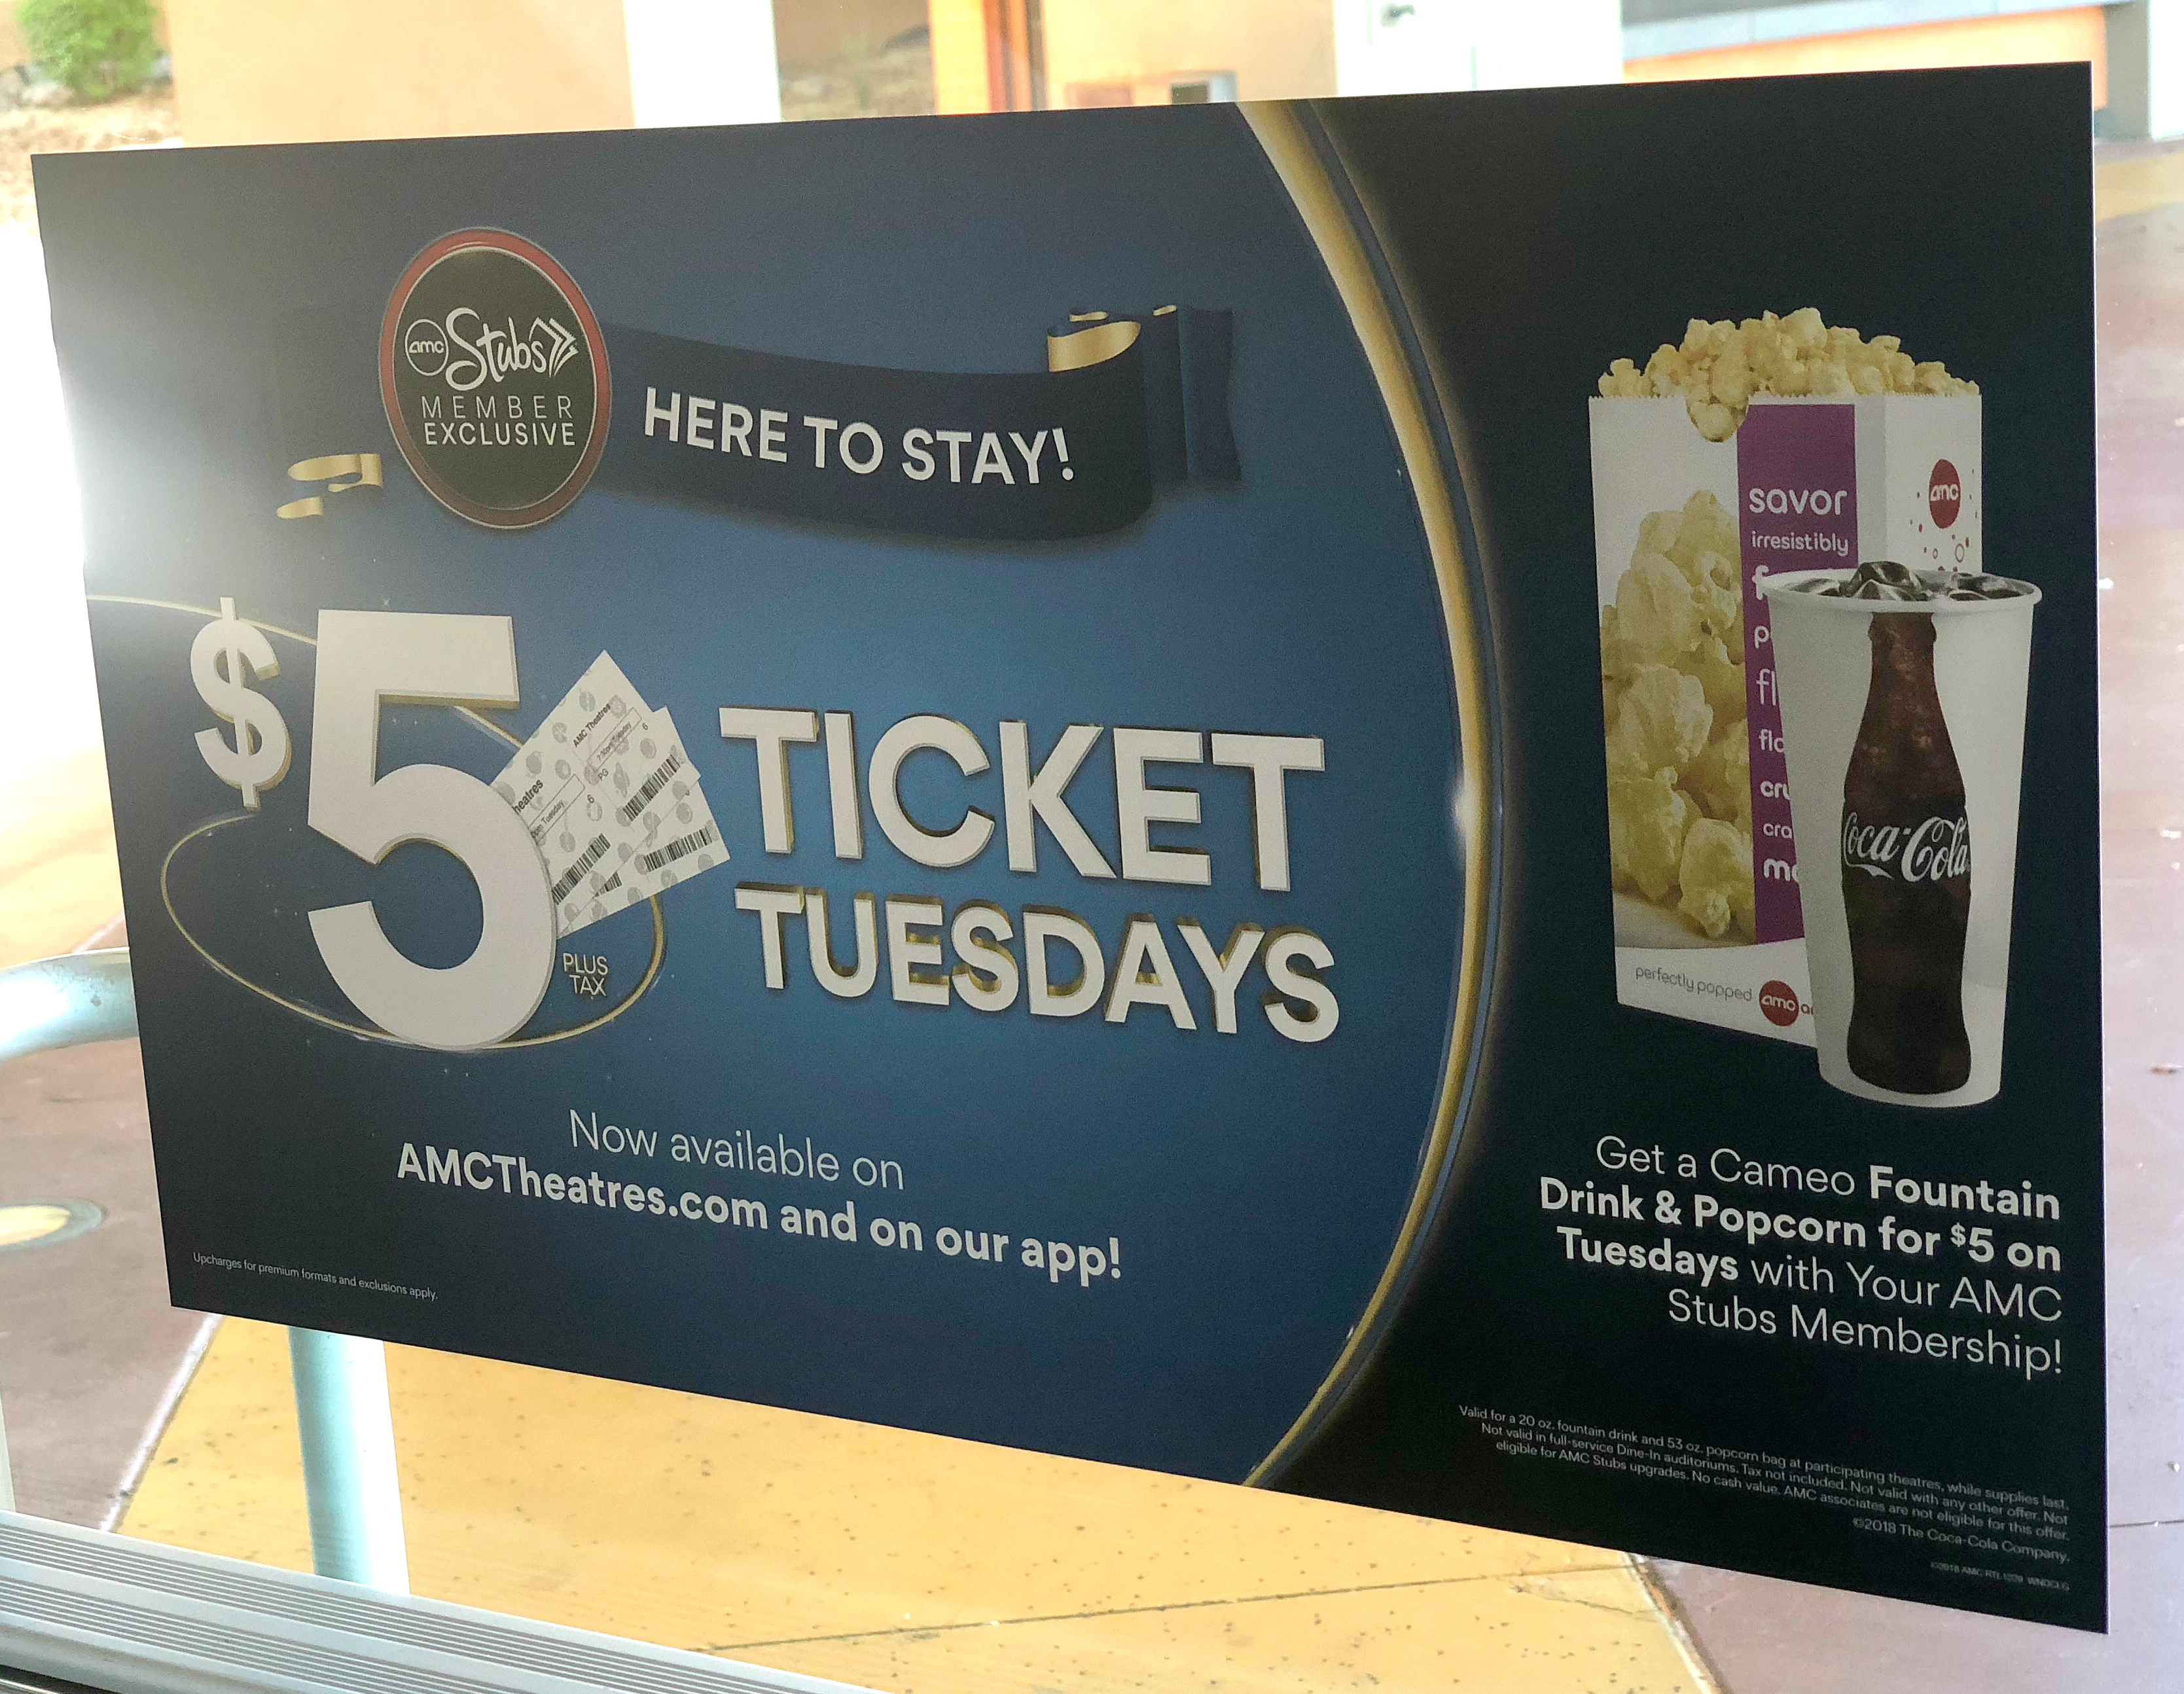 simple movie theater hacks that save money - AMC Ticket Tuesday sign